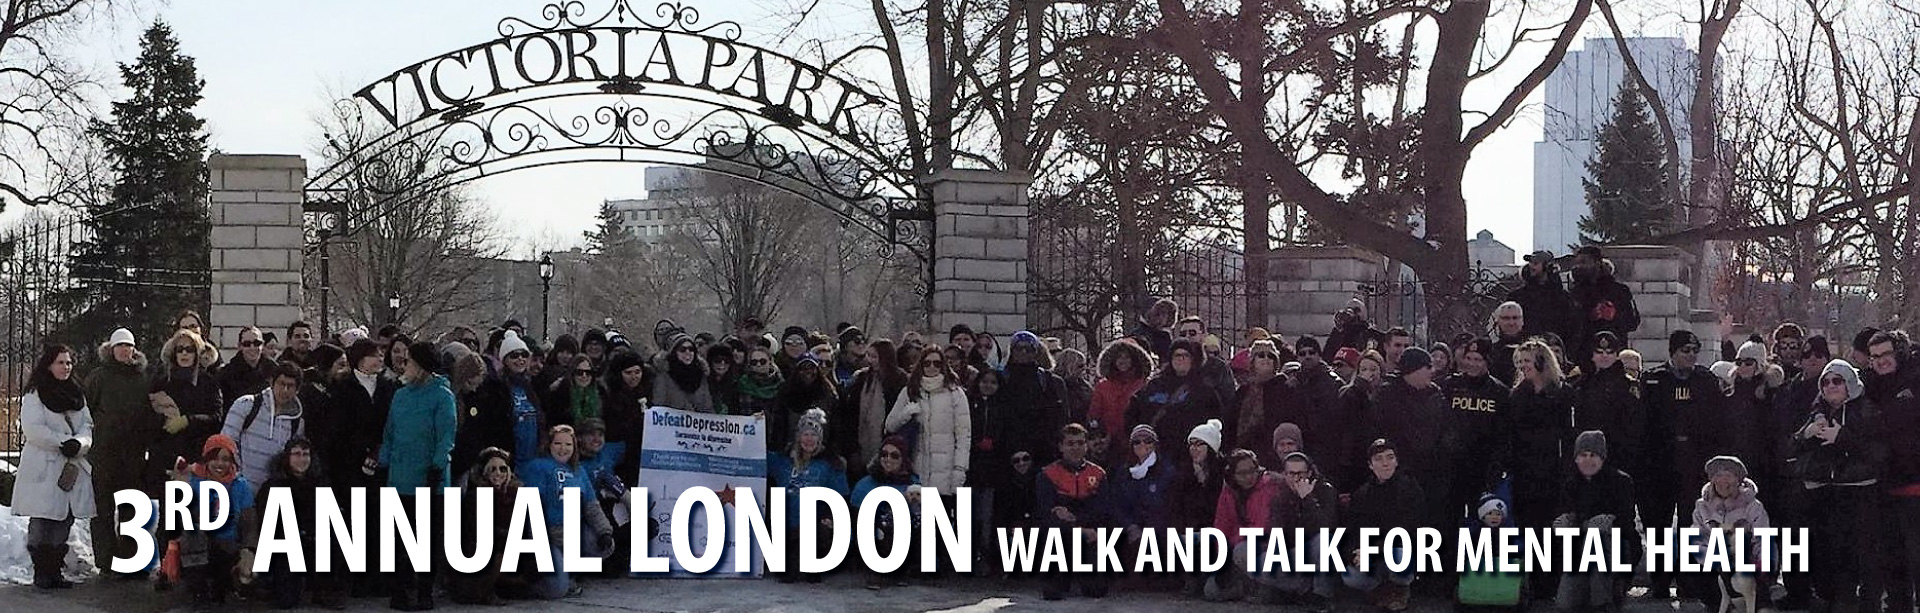 London talk and walk for mental health